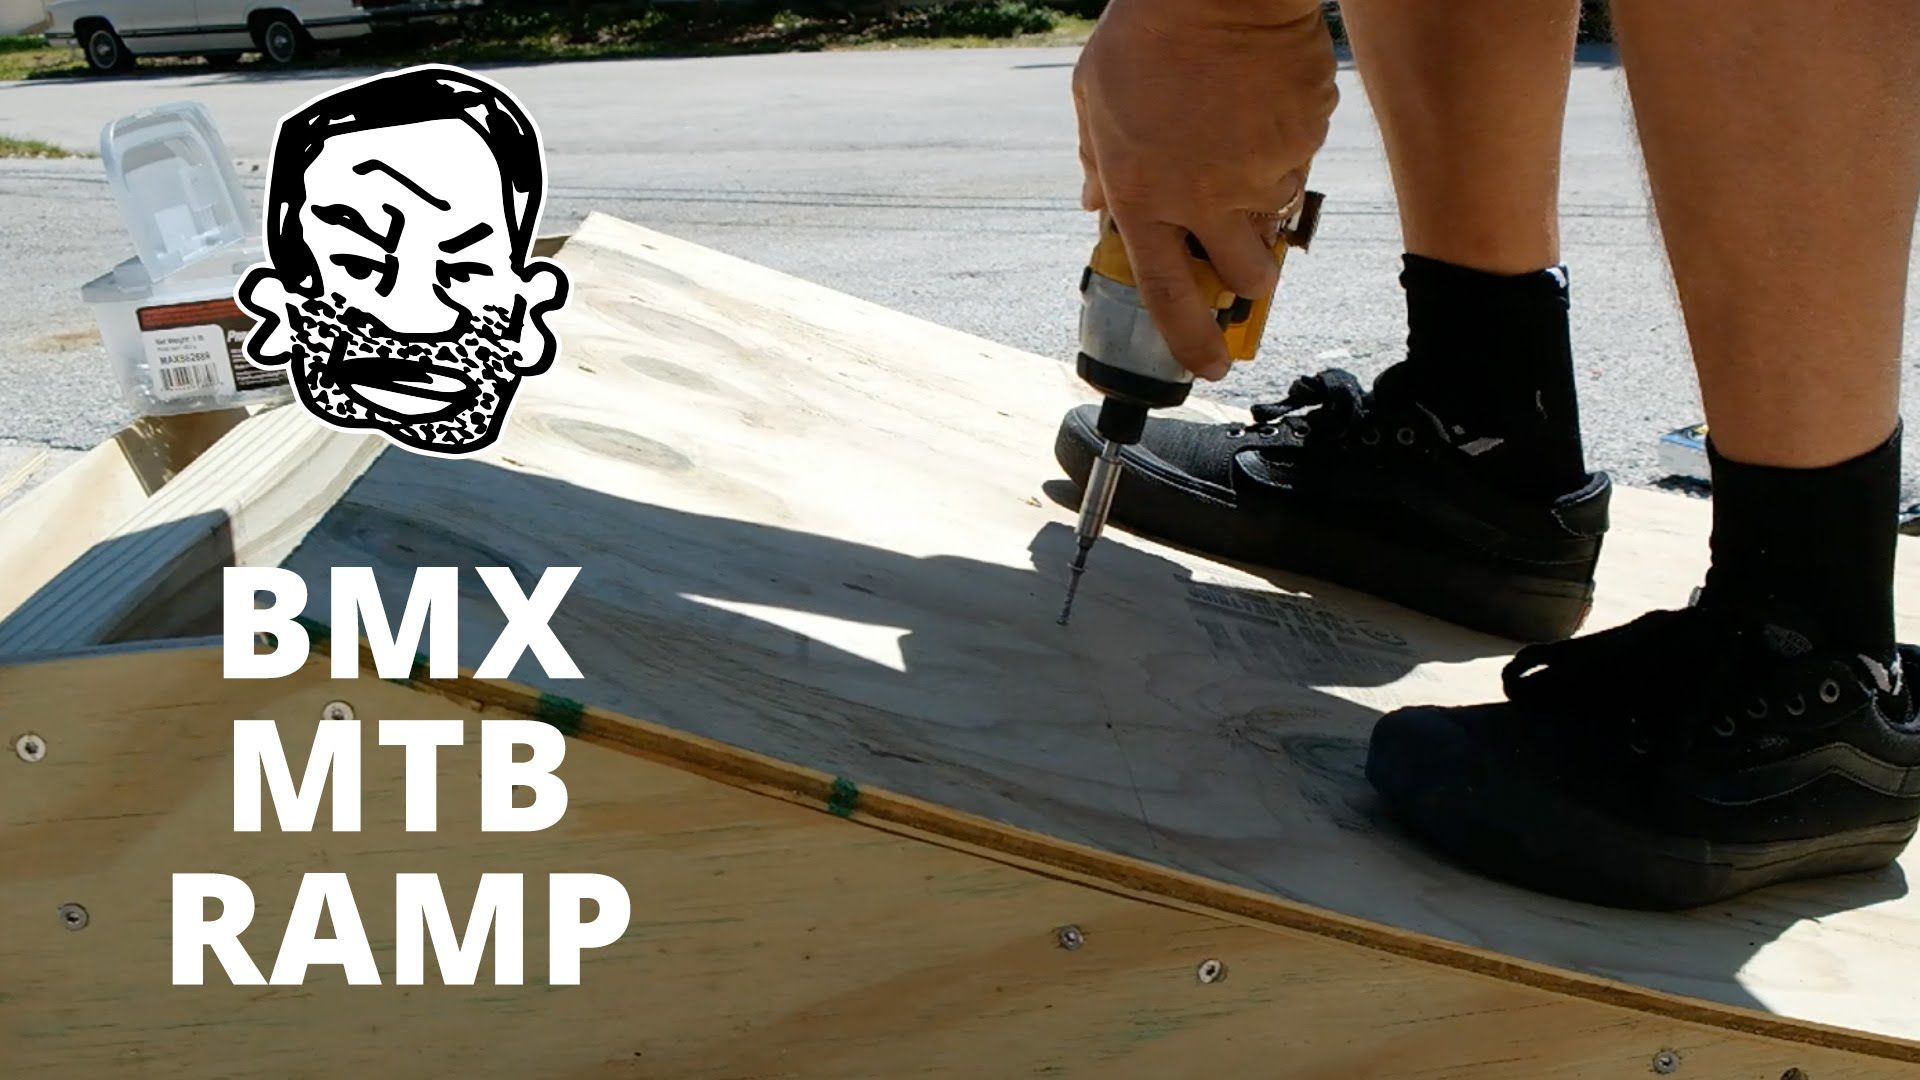 Mini ramp in basement youtube - How To Build A Kicker Ramp For Bmx Or Mtb